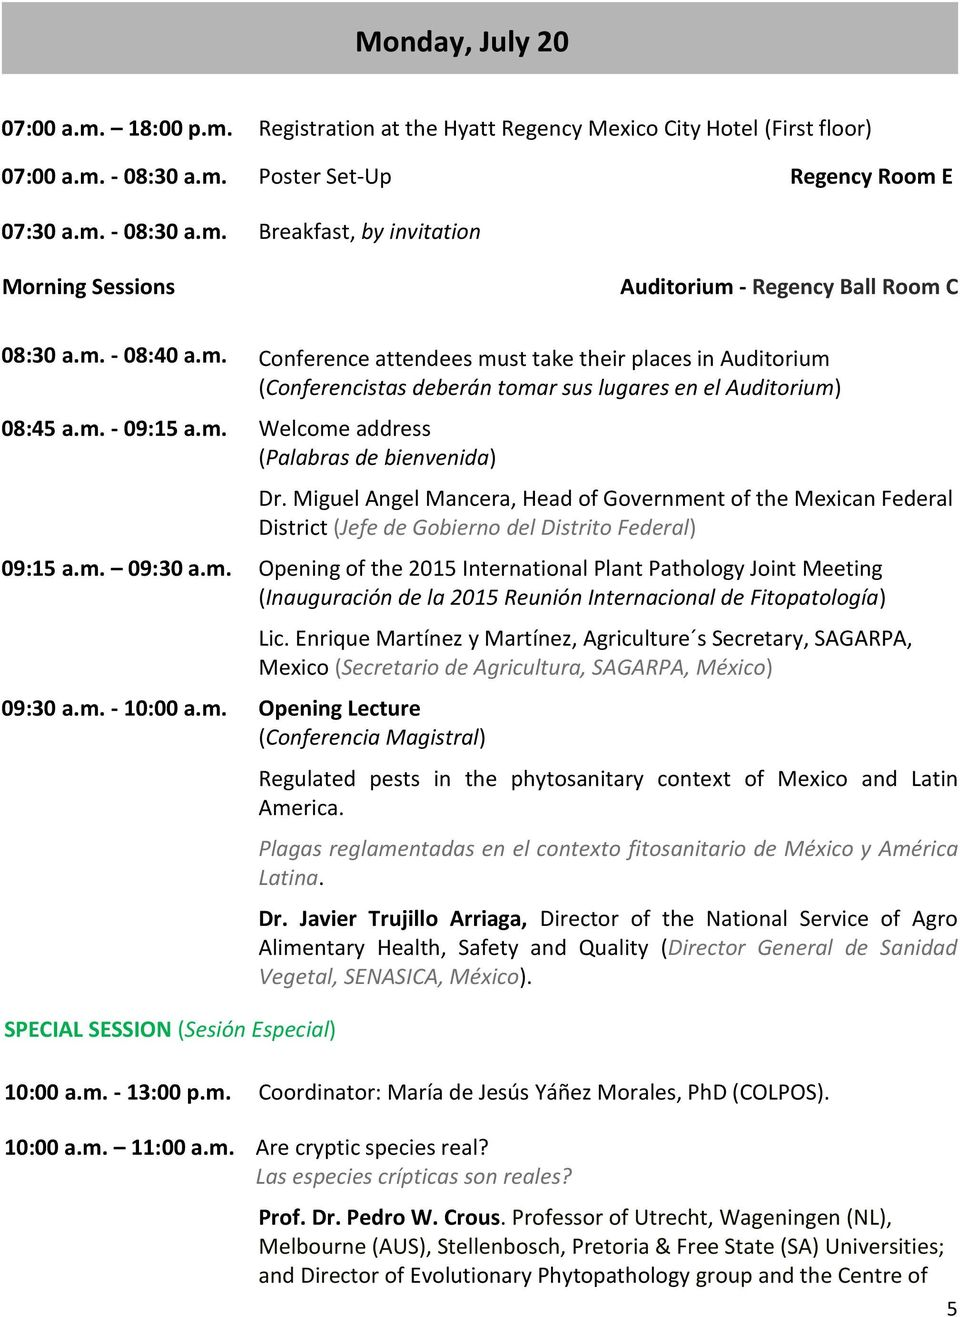 Miguel Angel Mancera, Head of Government of the Mexican Federal District (Jefe de Gobierno del Distrito Federal) 09:15 a.m. 09:30 a.m. Opening of the 2015 International Plant Pathology Joint Meeting (Inauguración de la 2015 Reunión Internacional de Fitopatología) 09:30 a.